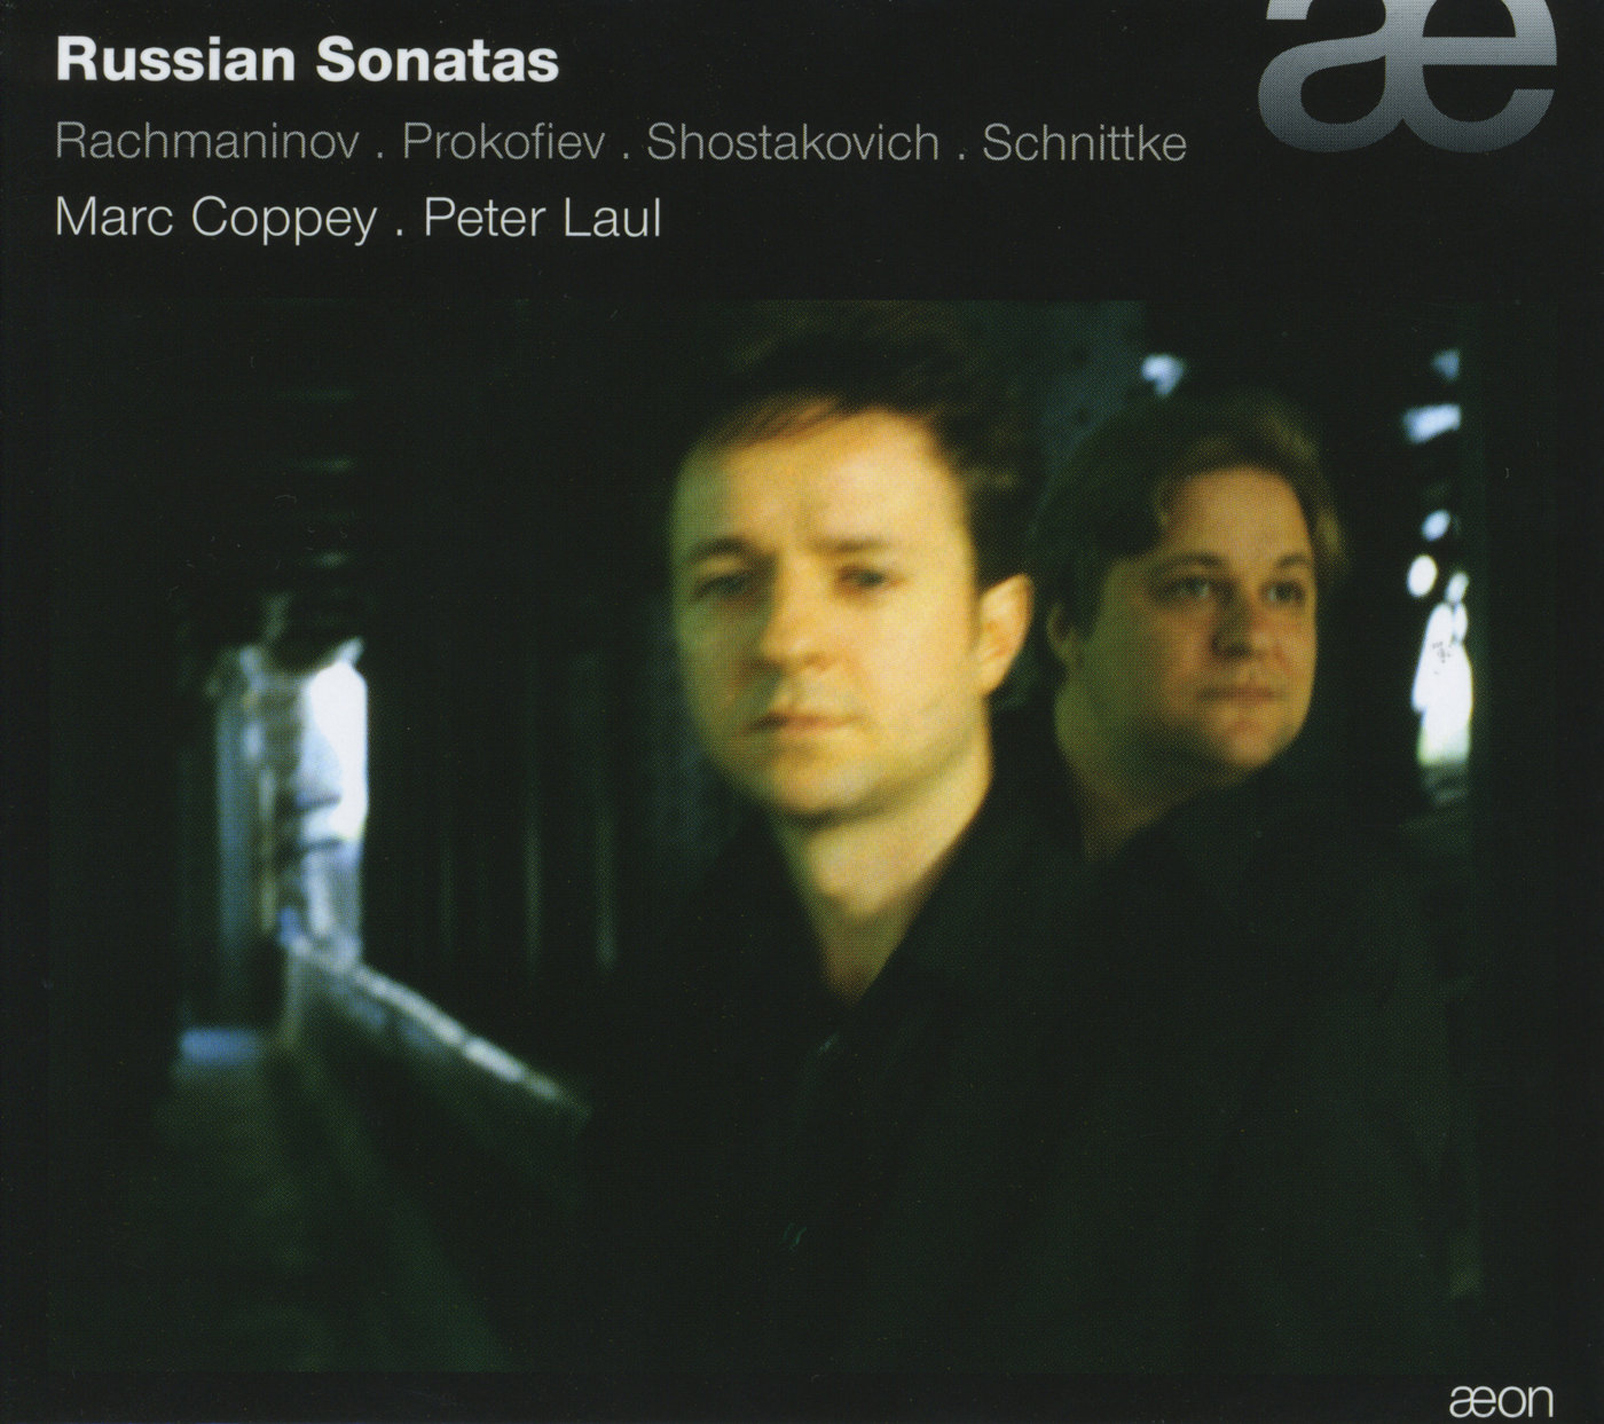 Cello Sonata in D Minor, Op. 40, Cello Sonata in D Minor, Op. 40: III. Largo